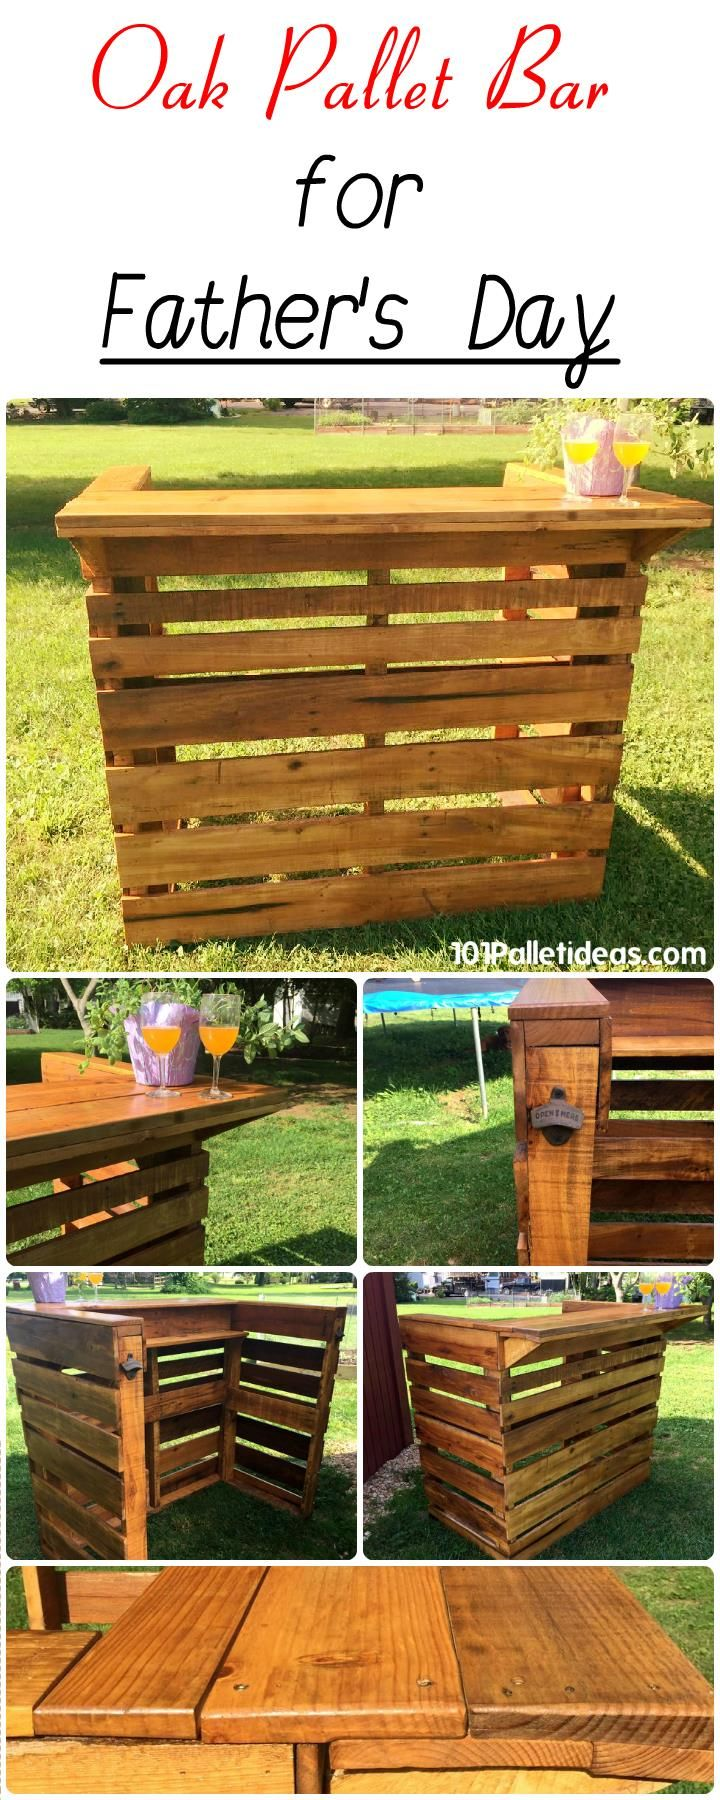 Oak-Pallet-Bar-for-Fathers-Day-Gift-for-Father.jpg 720 × 1 800 pixels